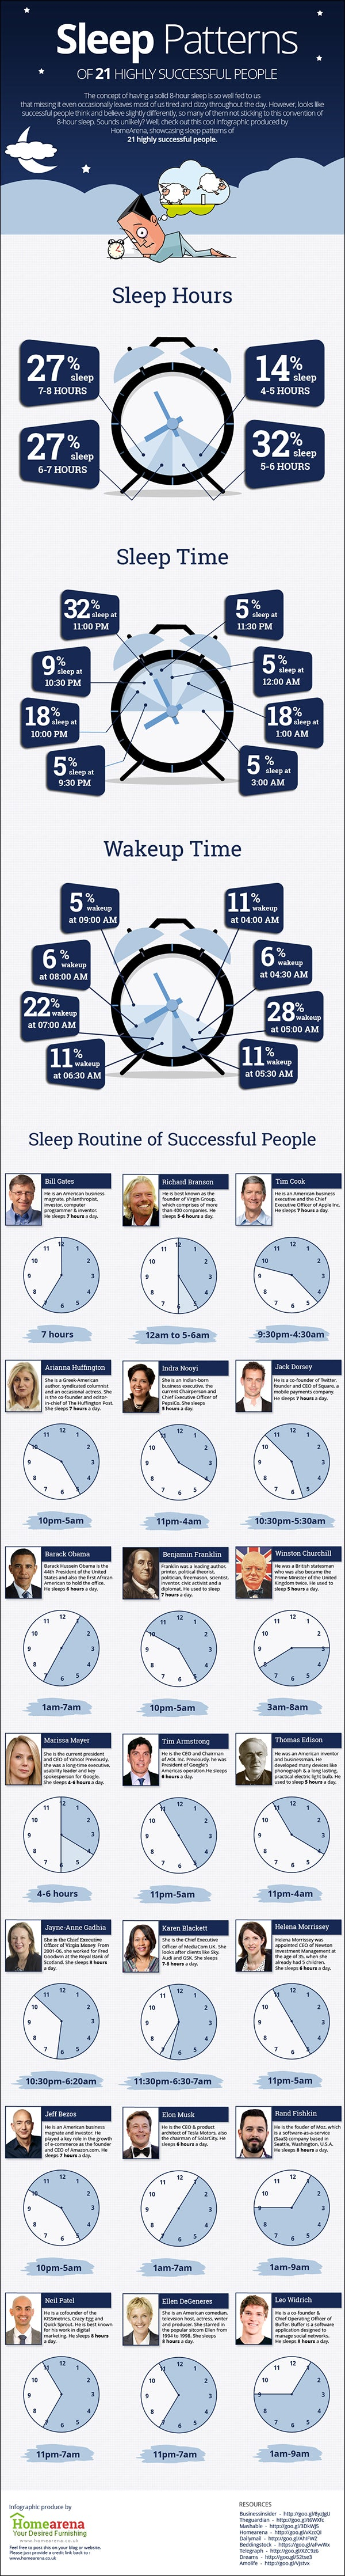 Sleep Patterns of Successful People Infographic